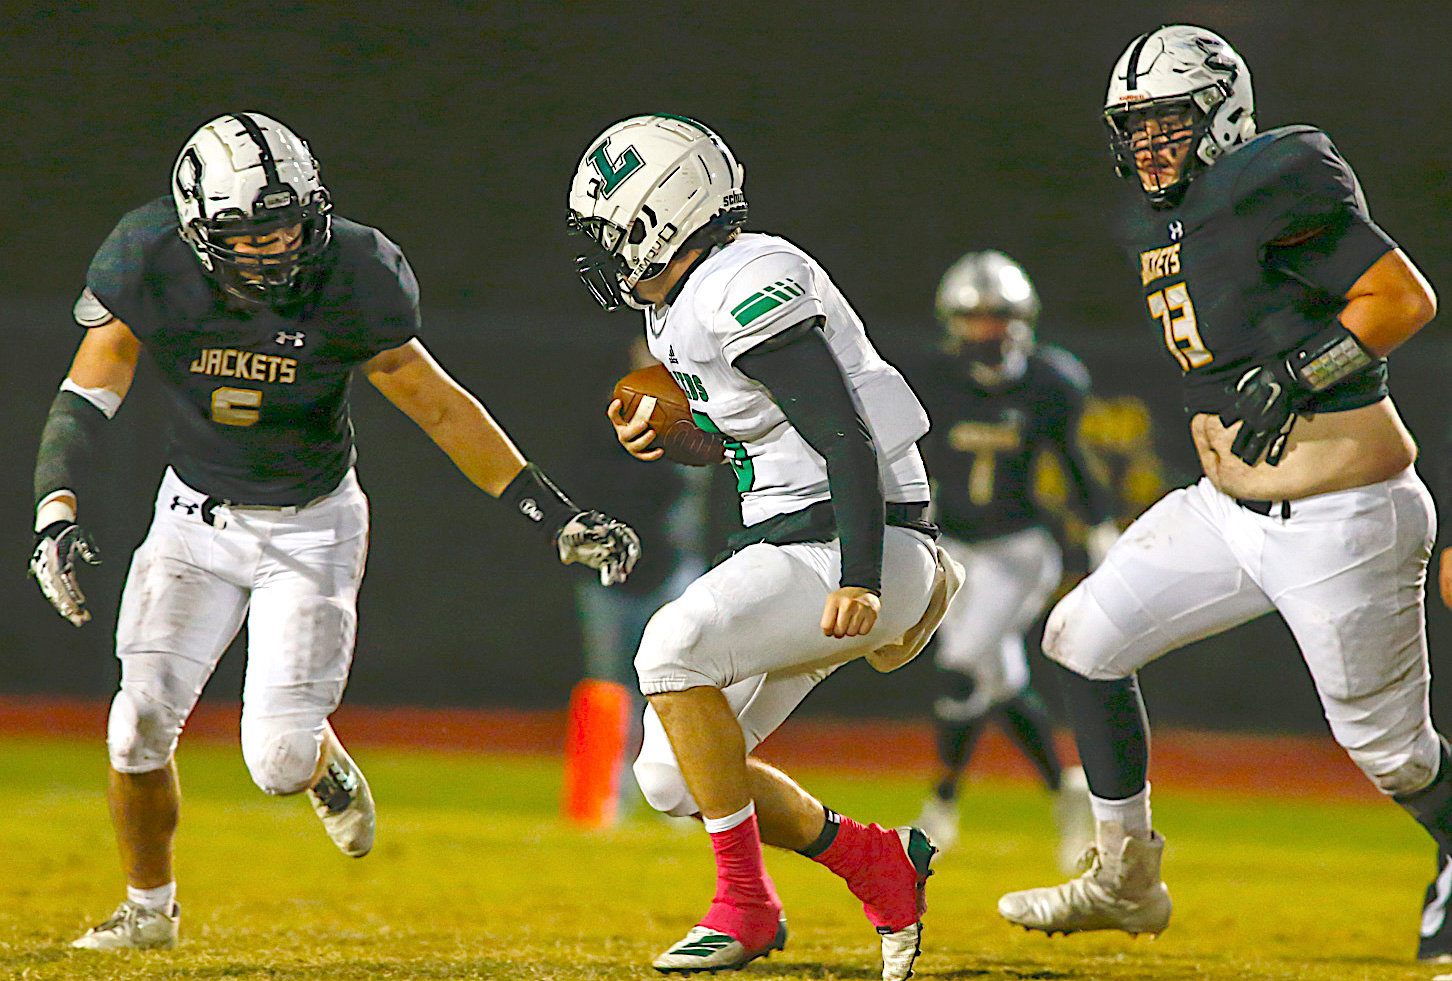 Corner's Joshua Myrick looks to tackle a Leeds player during their game Friday night.